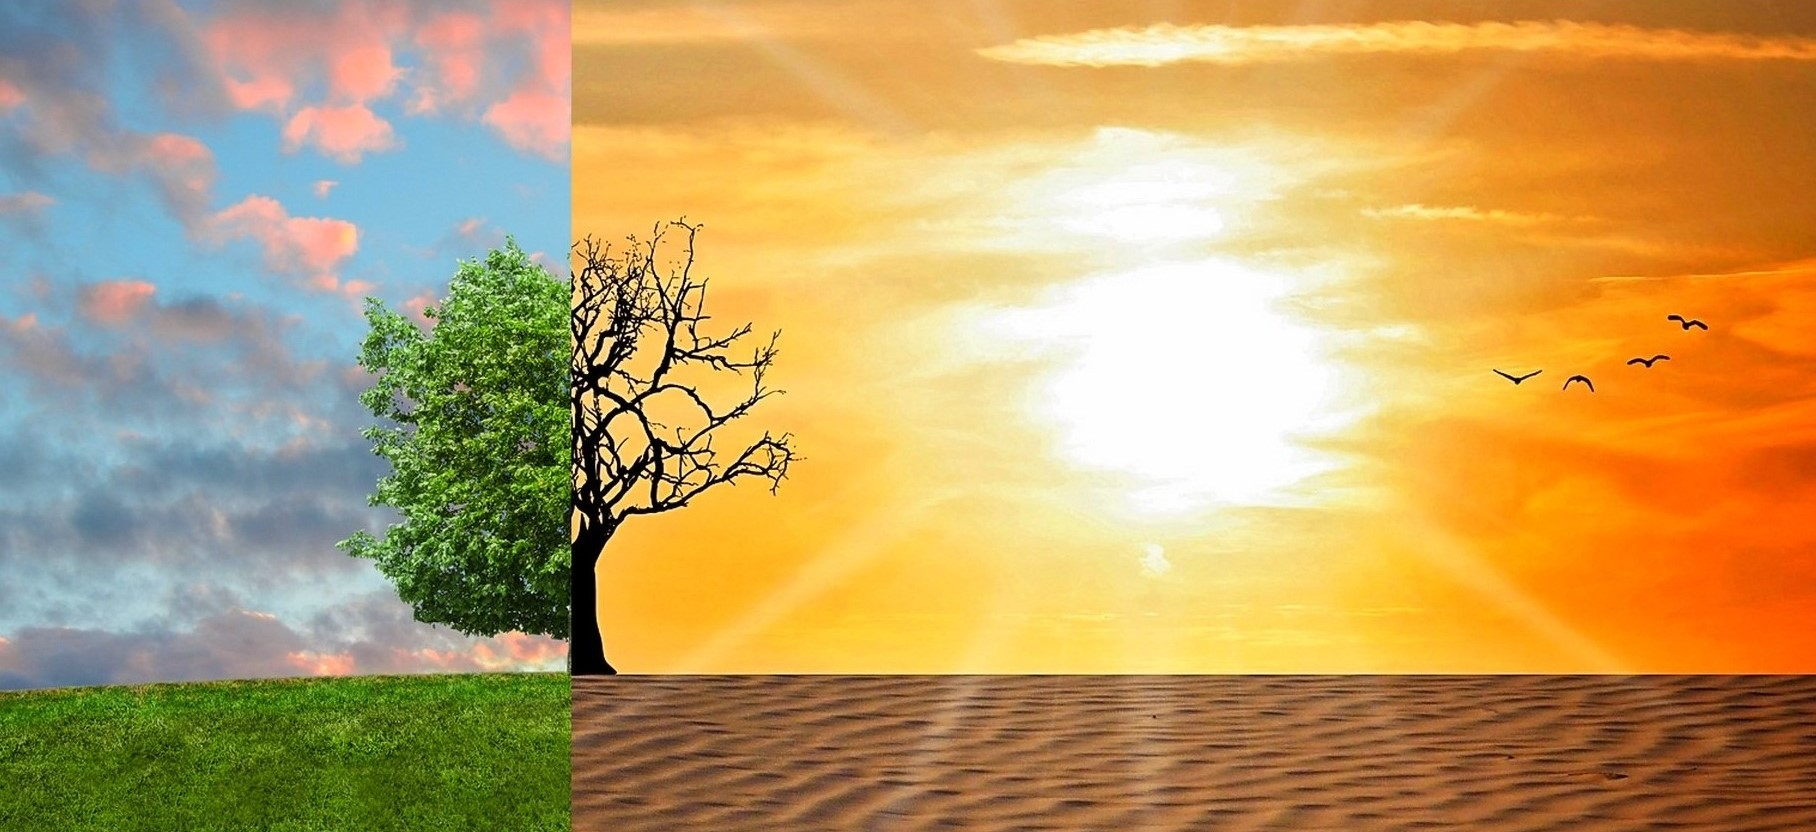 climate change impact shown on a tree with the left side normal and the right side without leaves and in the desert